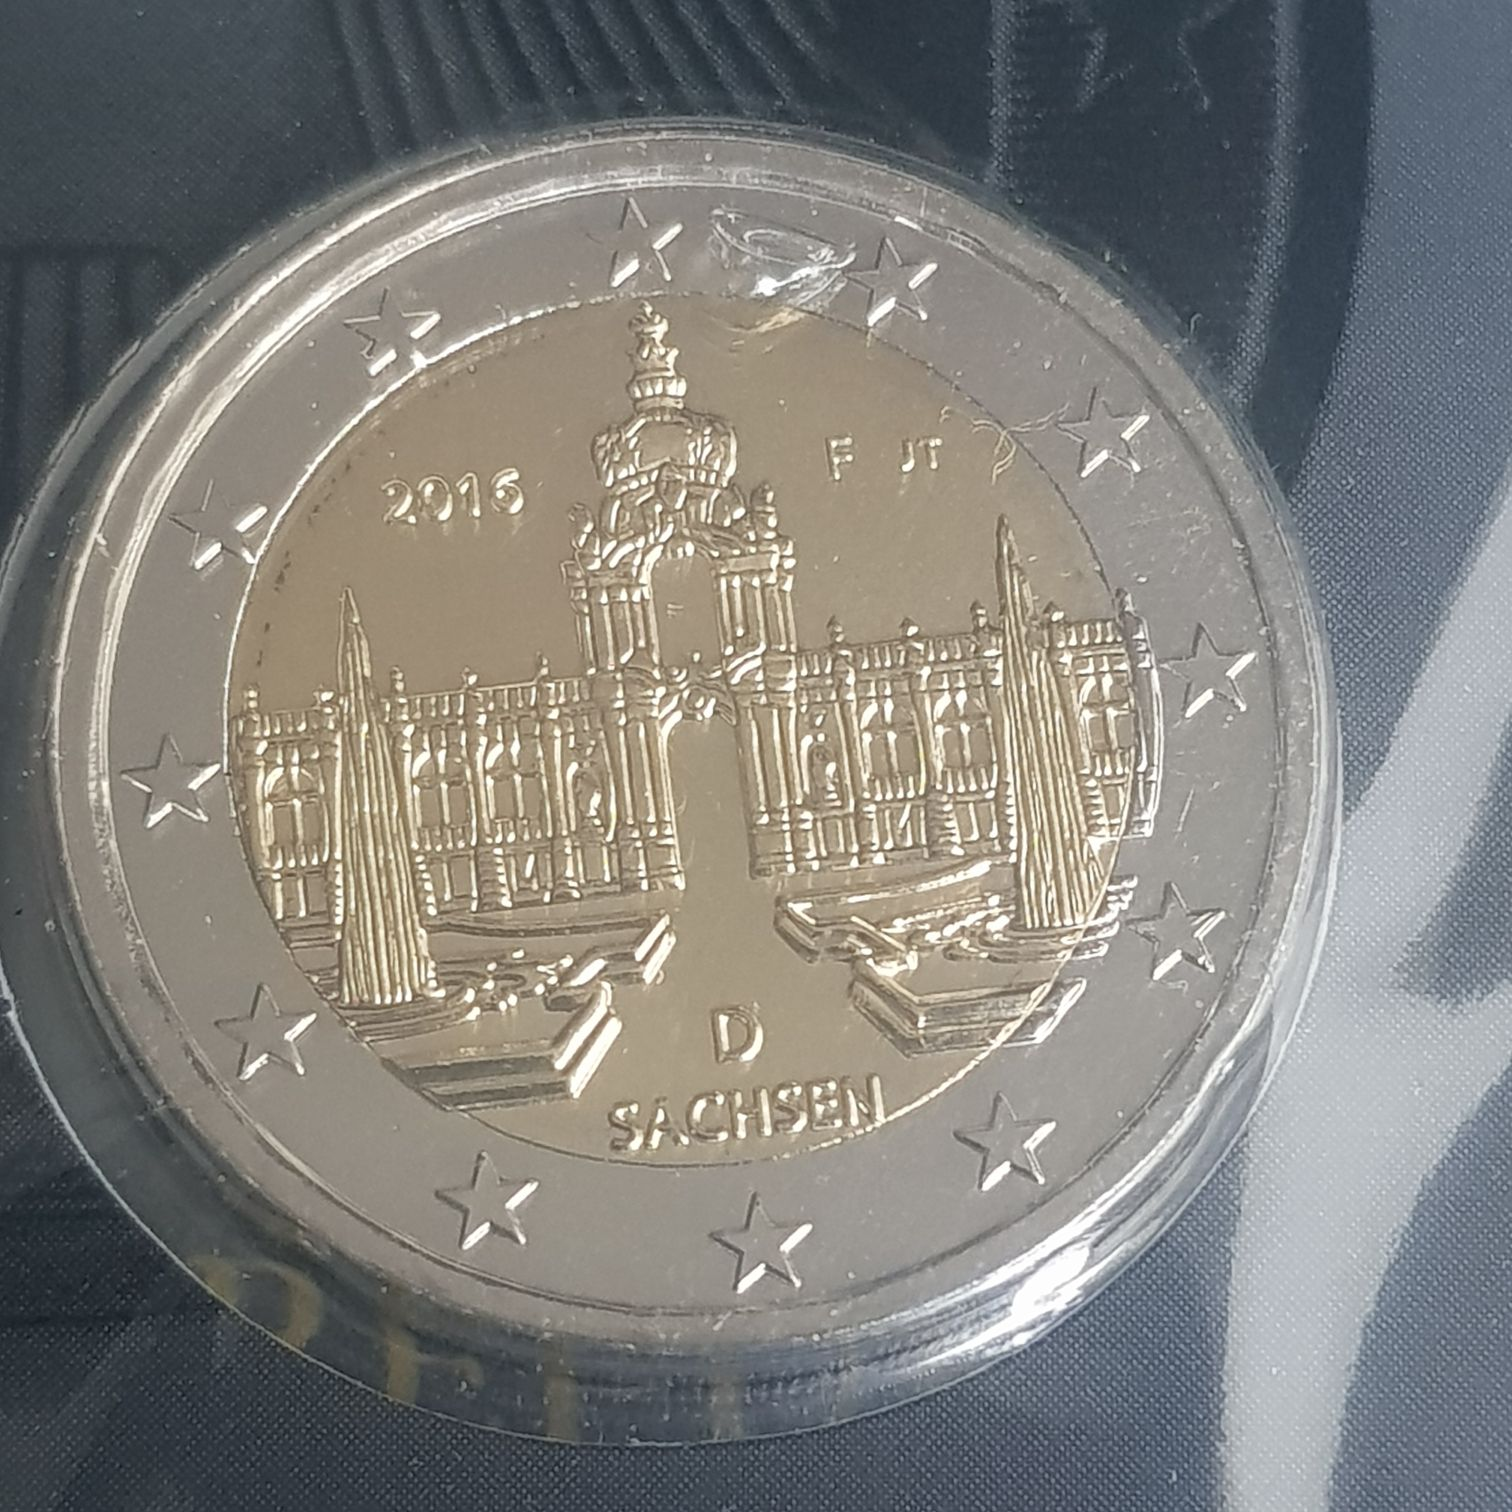 2 Euros Coin - $2 (2016) back image (back cover, second image)